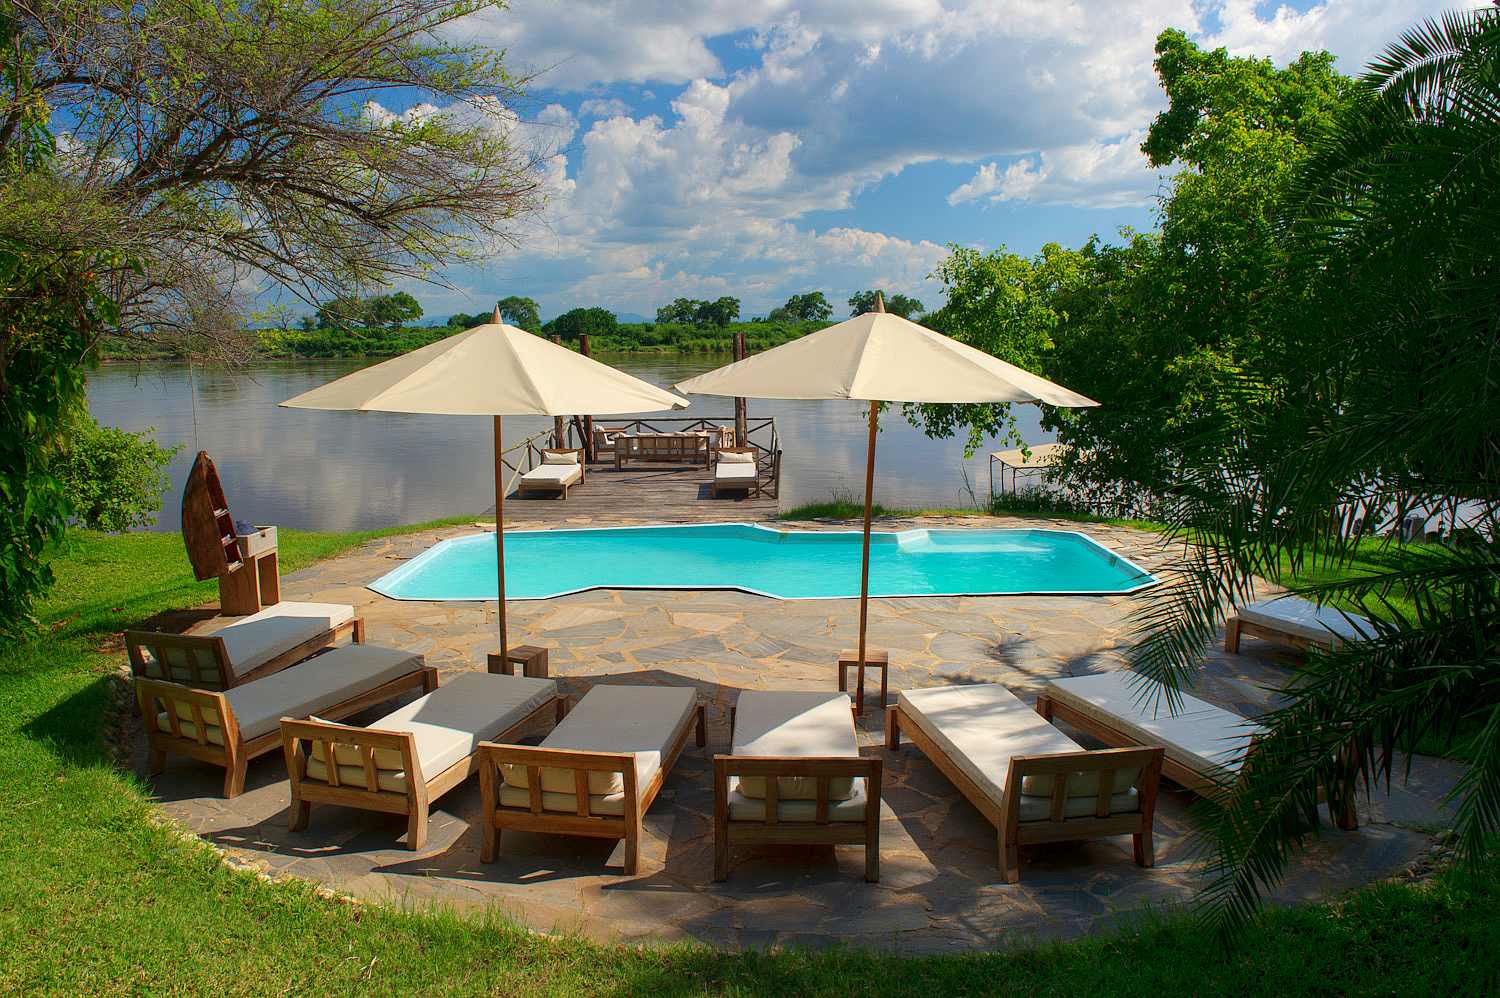 Lower Zambezi, Zambia, Kanyemba Lodge